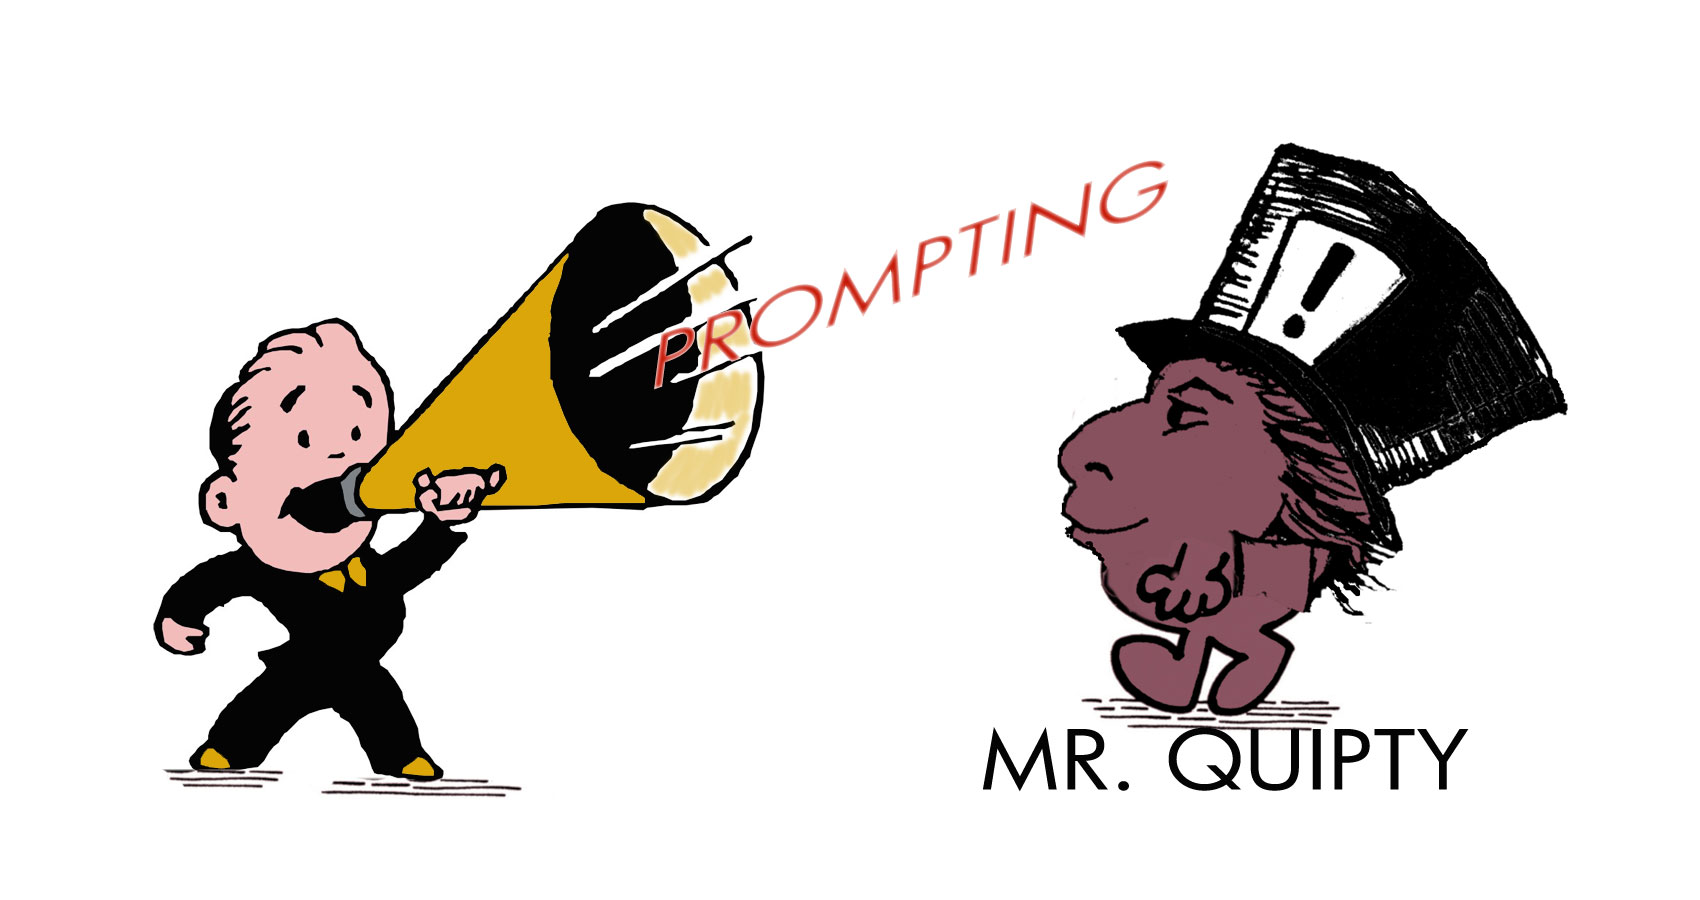 Prompting MR. QUIPTY at Spillwords.com